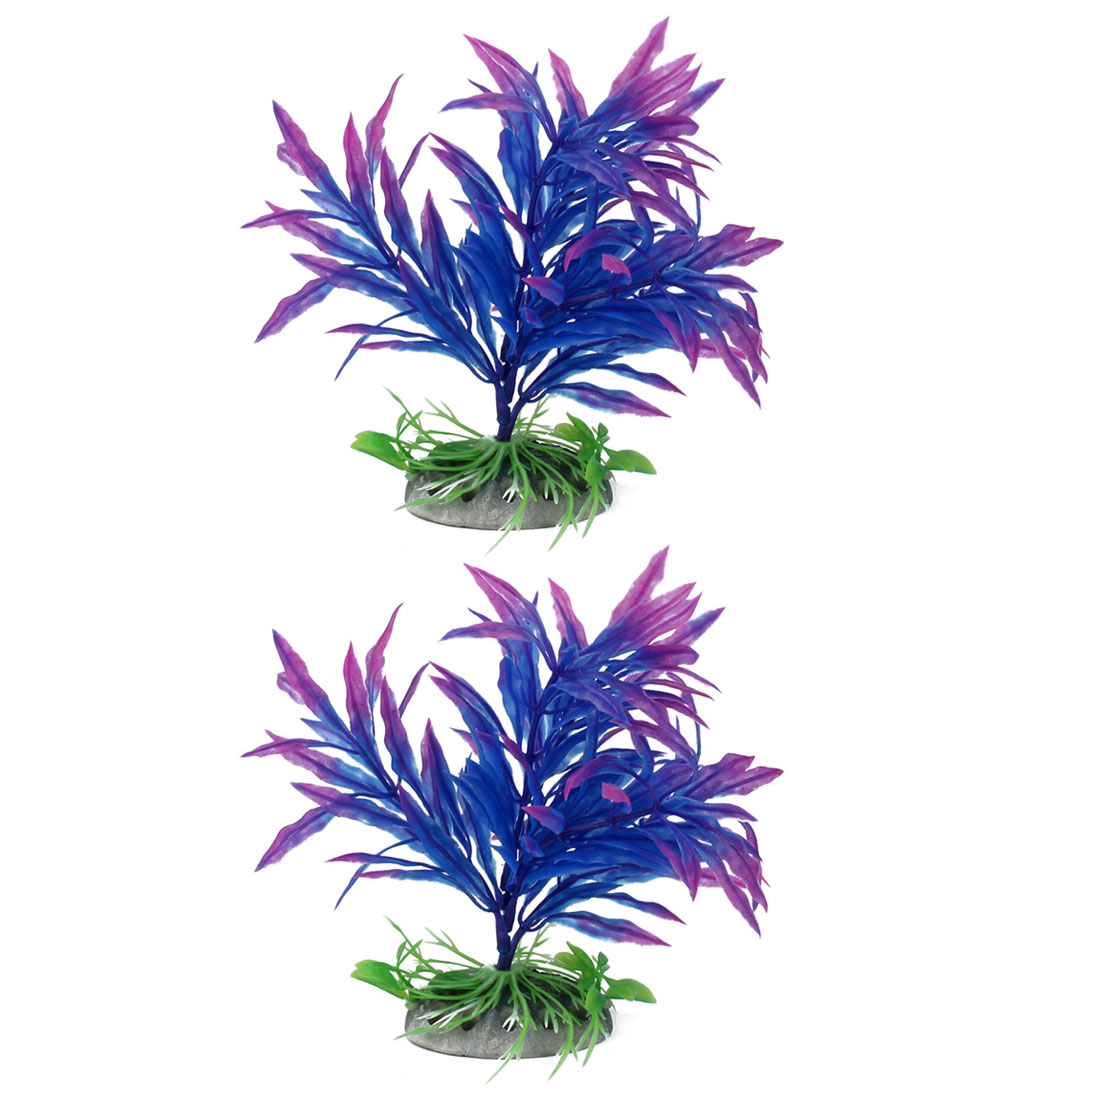 Aquarium Ceramic Base Artificial Plant Adornment Underwater Landscape Manmade Ornament Purple 2pcs